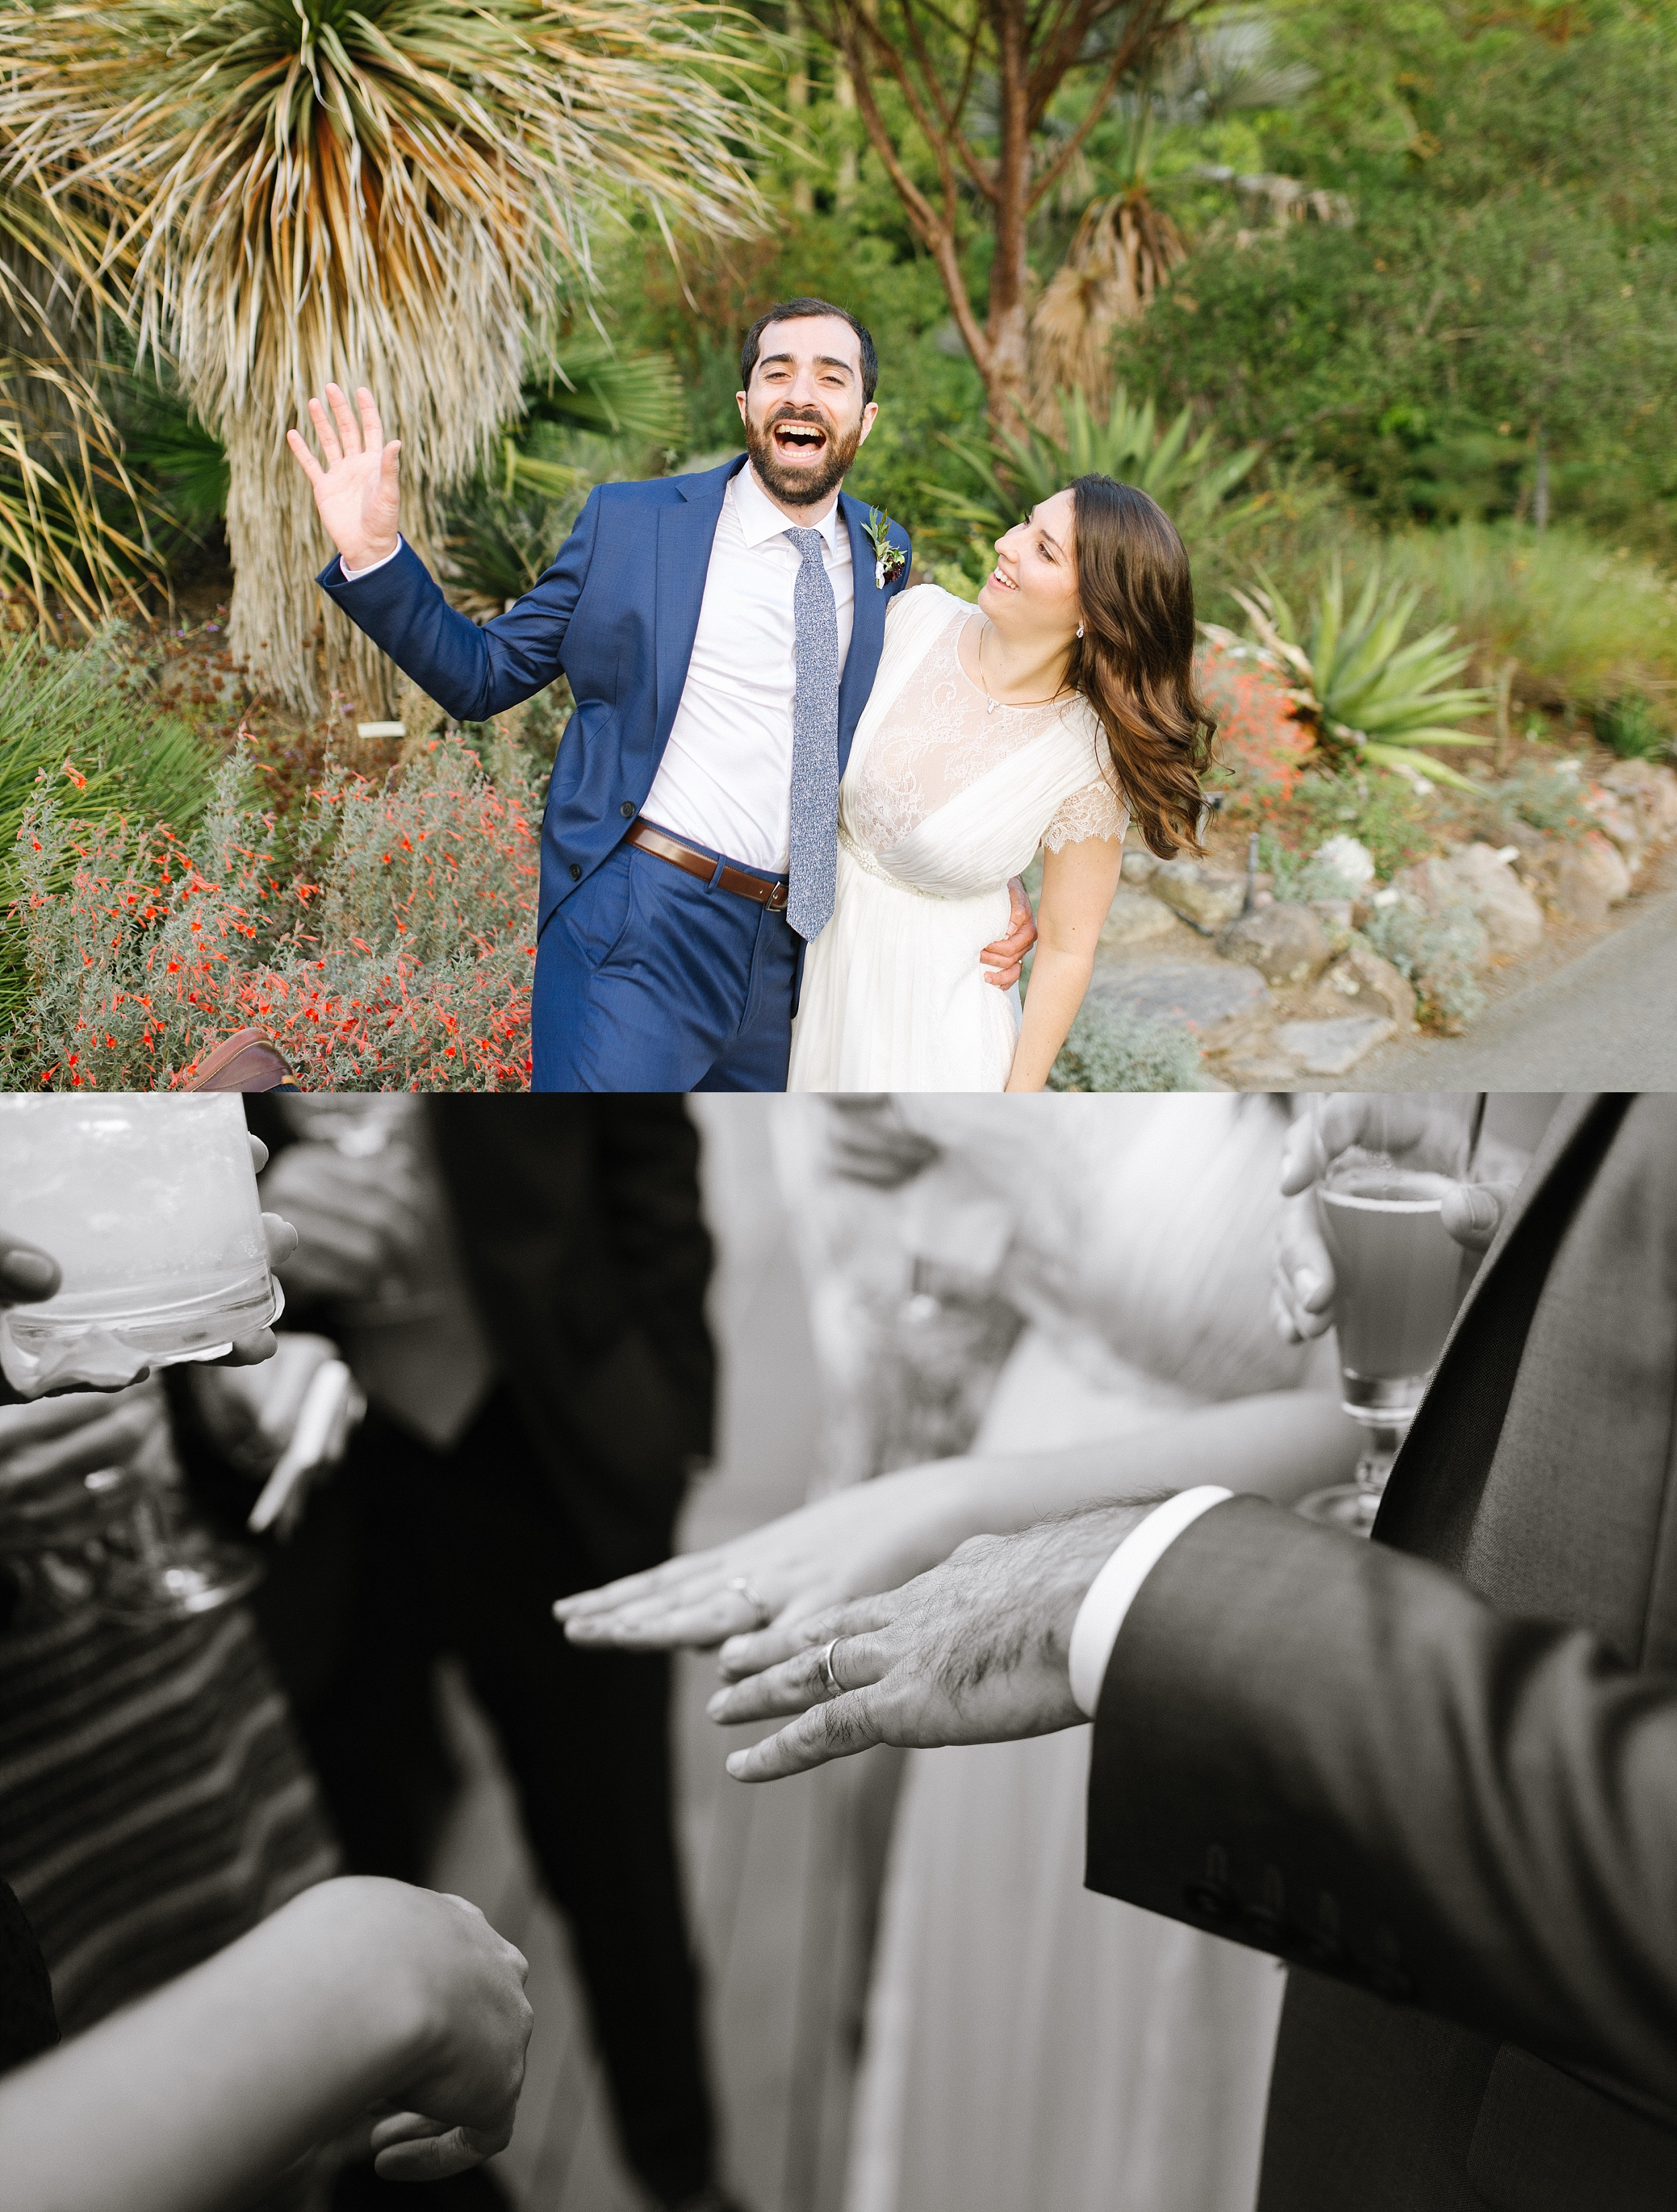 noahhannah_redwoods_botanical_wedding_berkeley_cdp_0023.jpg